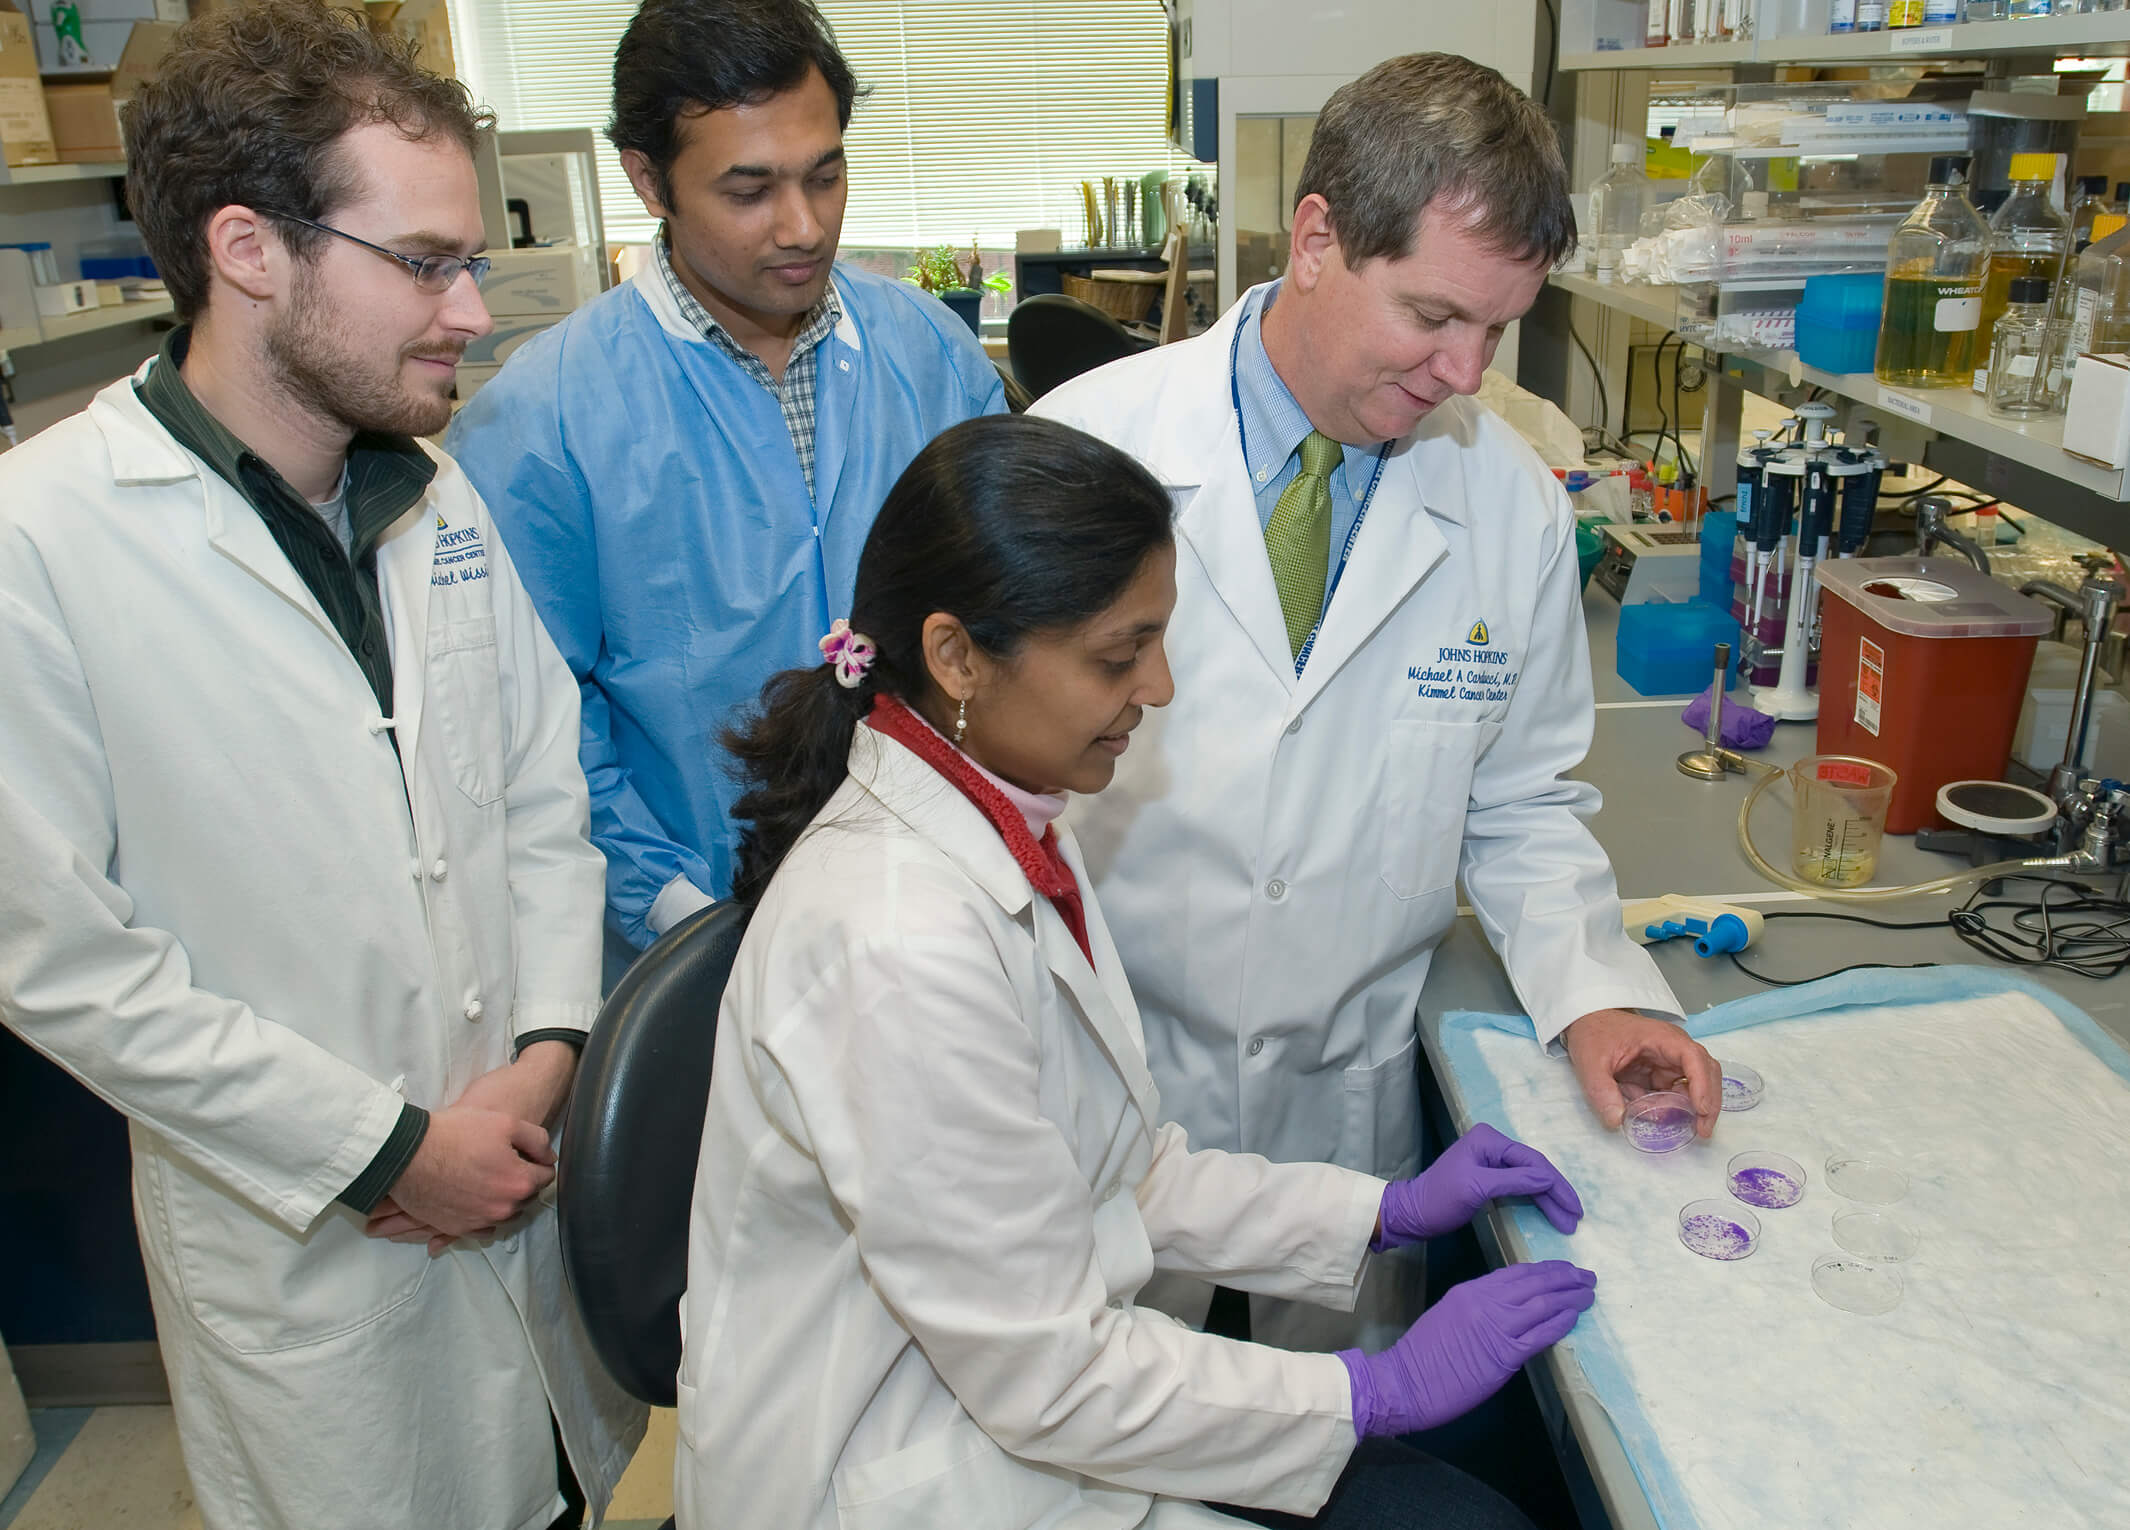 Laboratory scientists at the Johns Hopkins Kimmel Cancer Center